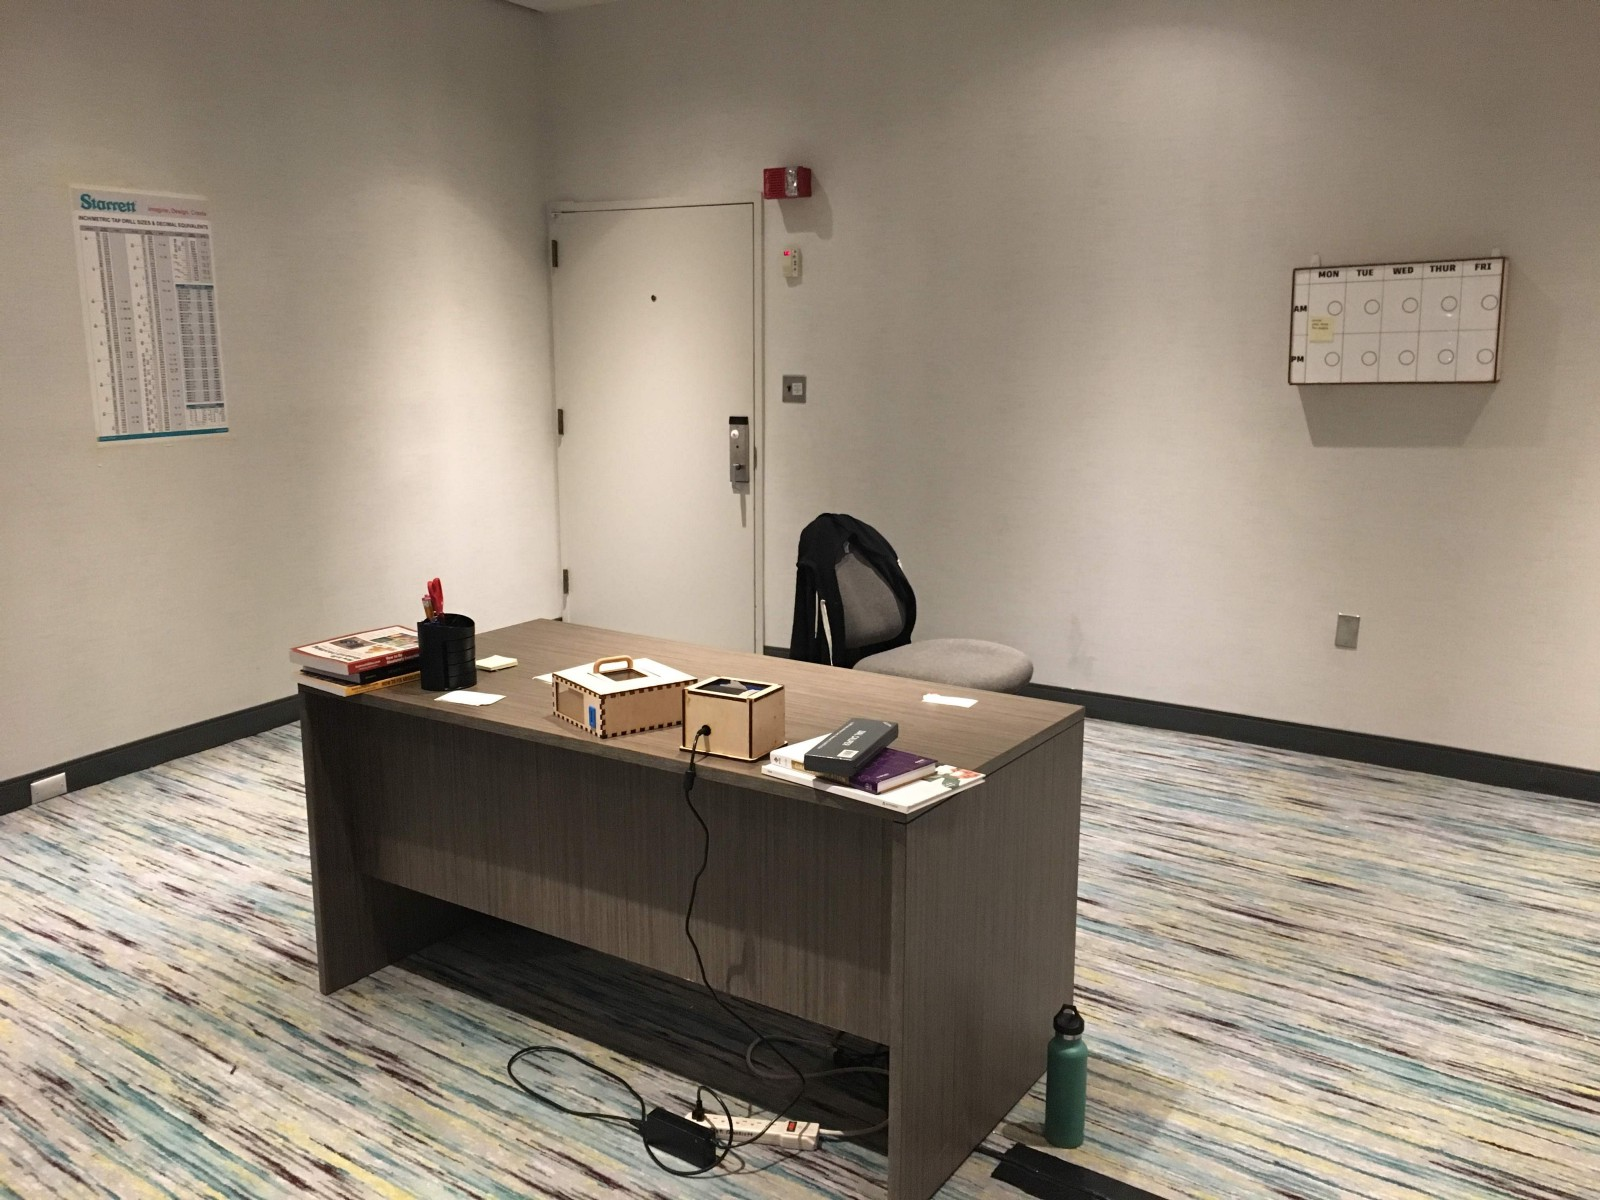 Designing A Pop Up Room Escape Tiffany Tseng Medium Book Wiring Observation Posters And Whiteboard Are Mounted On The Wall While Lockbox Printer Placed Desk Along With Series Of Books Pen Holder